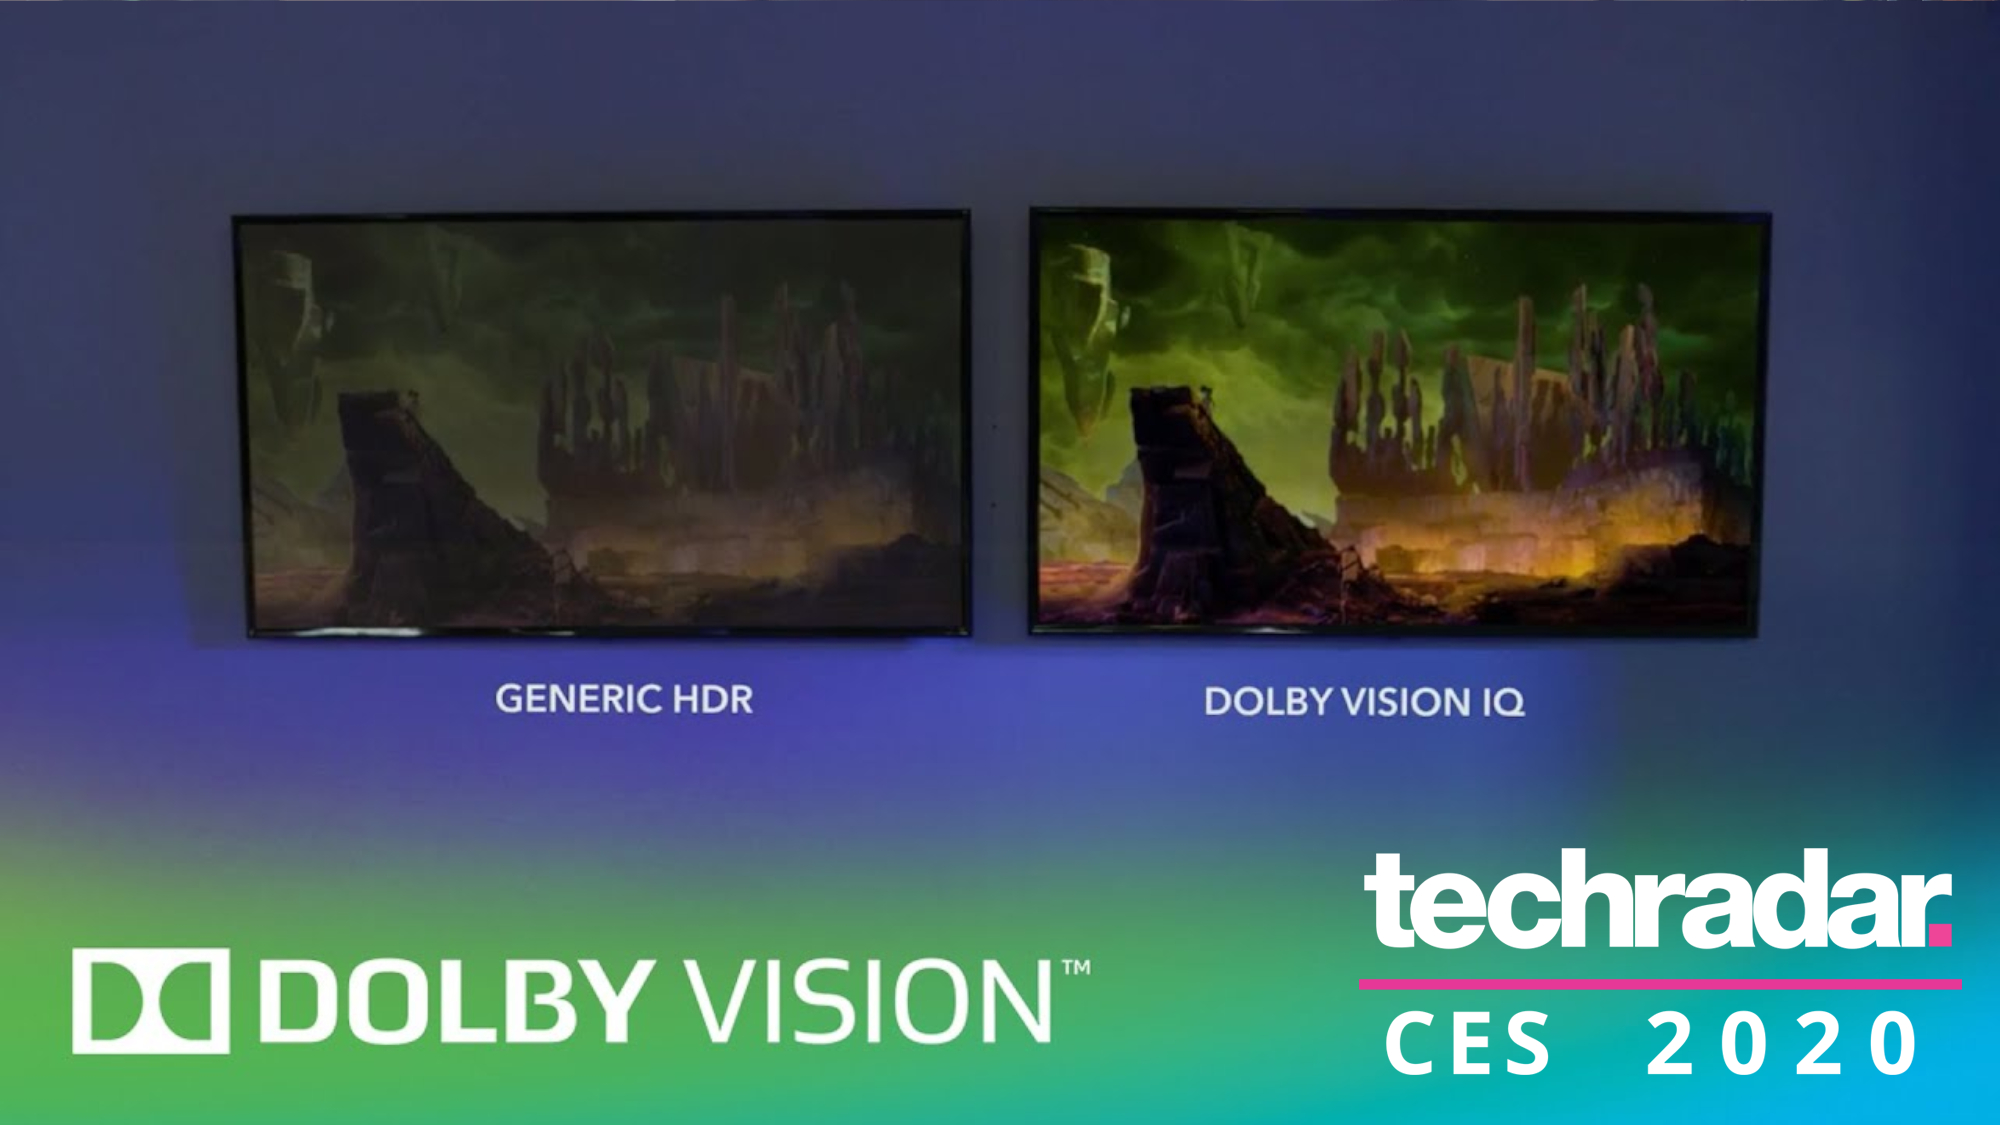 Dolby Vision IQ is about to make HDR TVs even better to look at